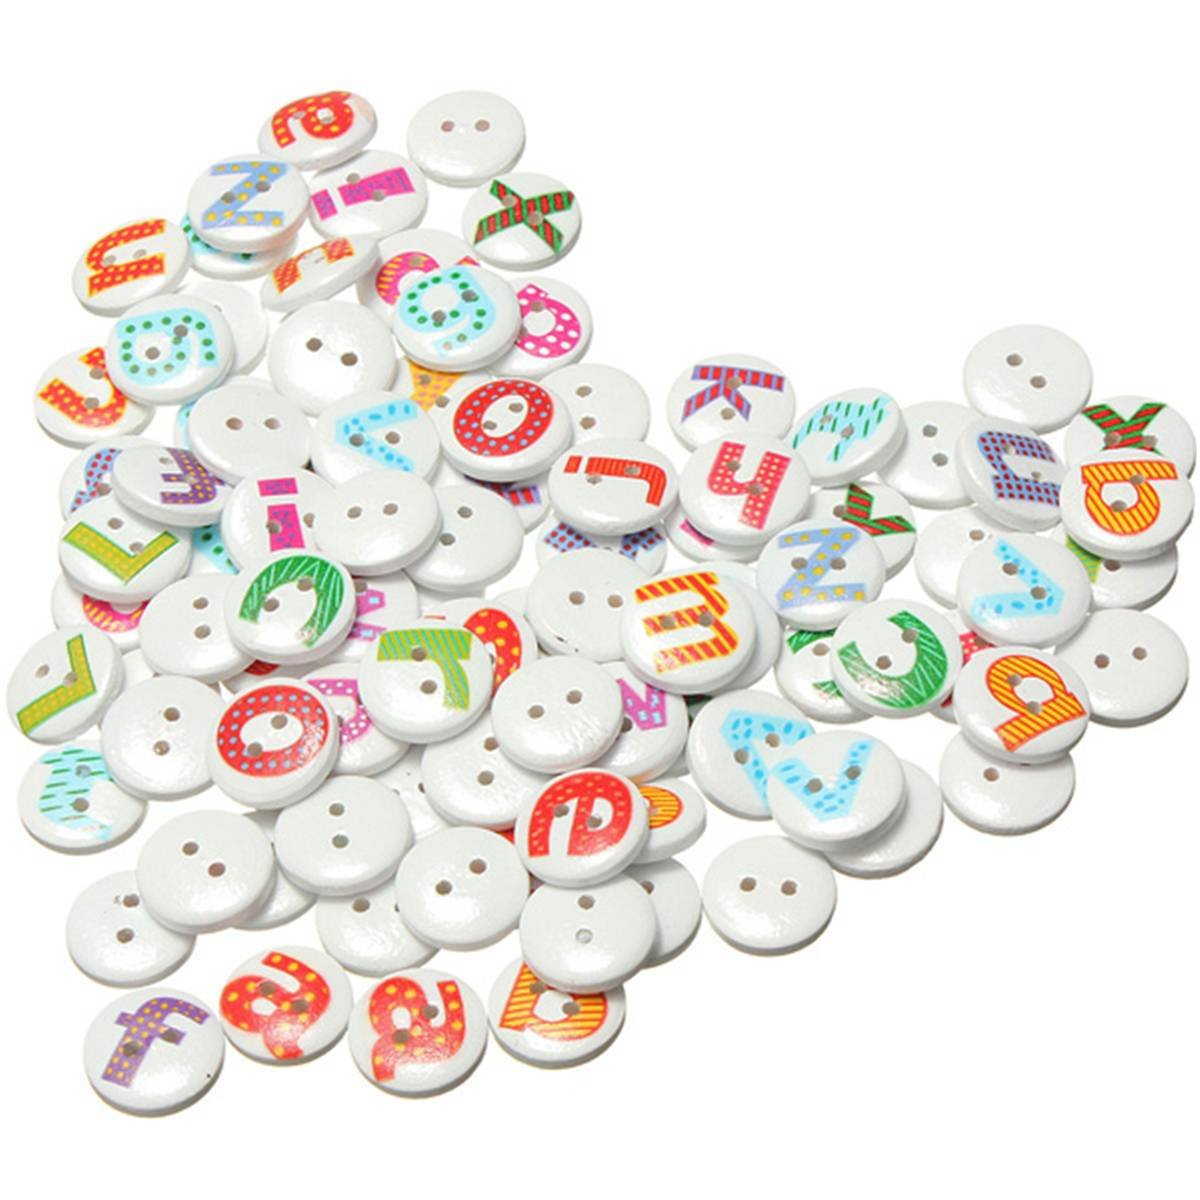 UESH-100Pcs Mixed Painted Letter Alphabet Wooden Sewing Button Scrapbooking